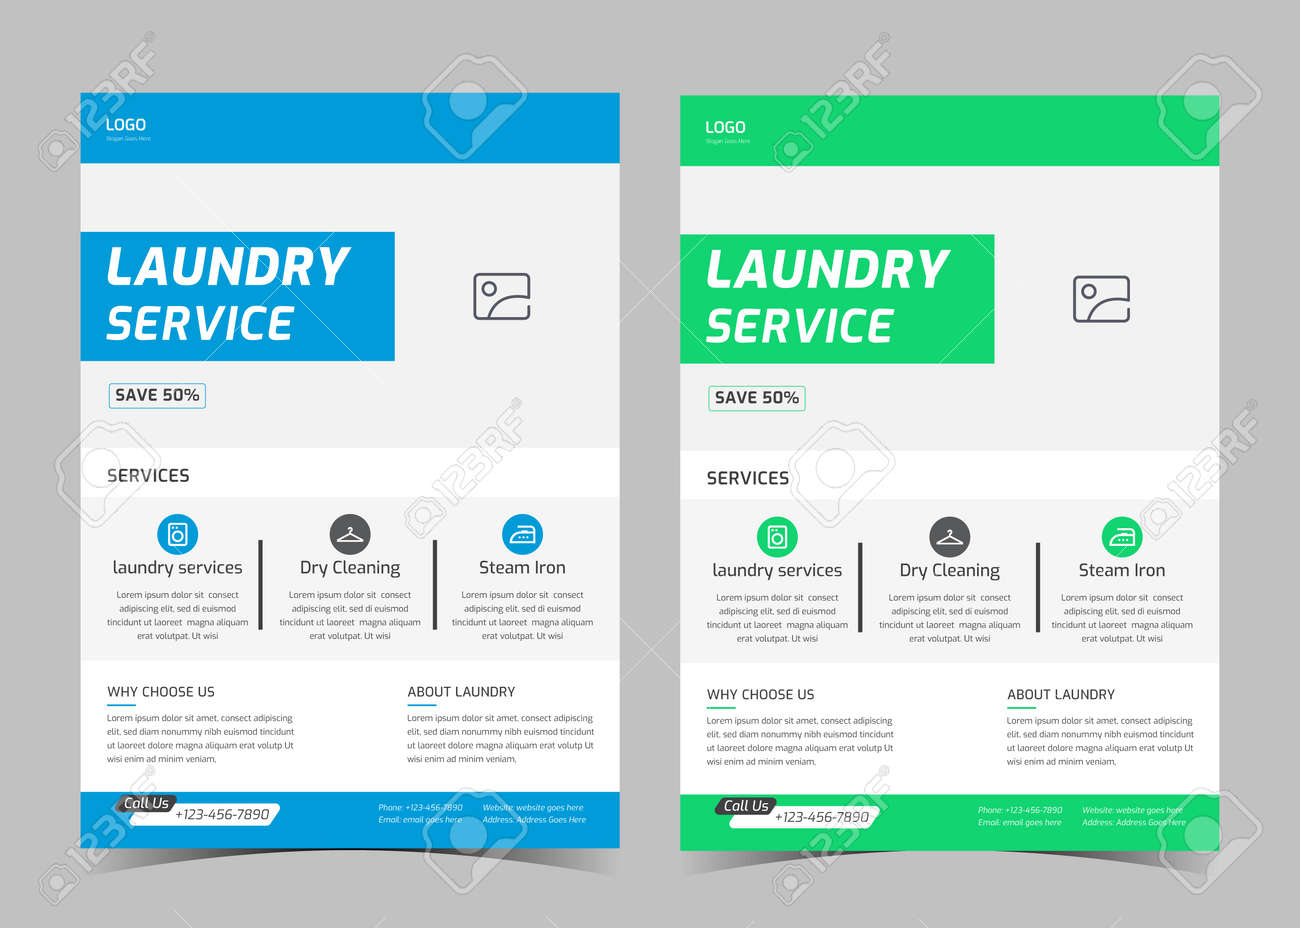 Laundry service flyer template. Creative laundry service poster. Laundry cleaning service leaflet template. - 169162270